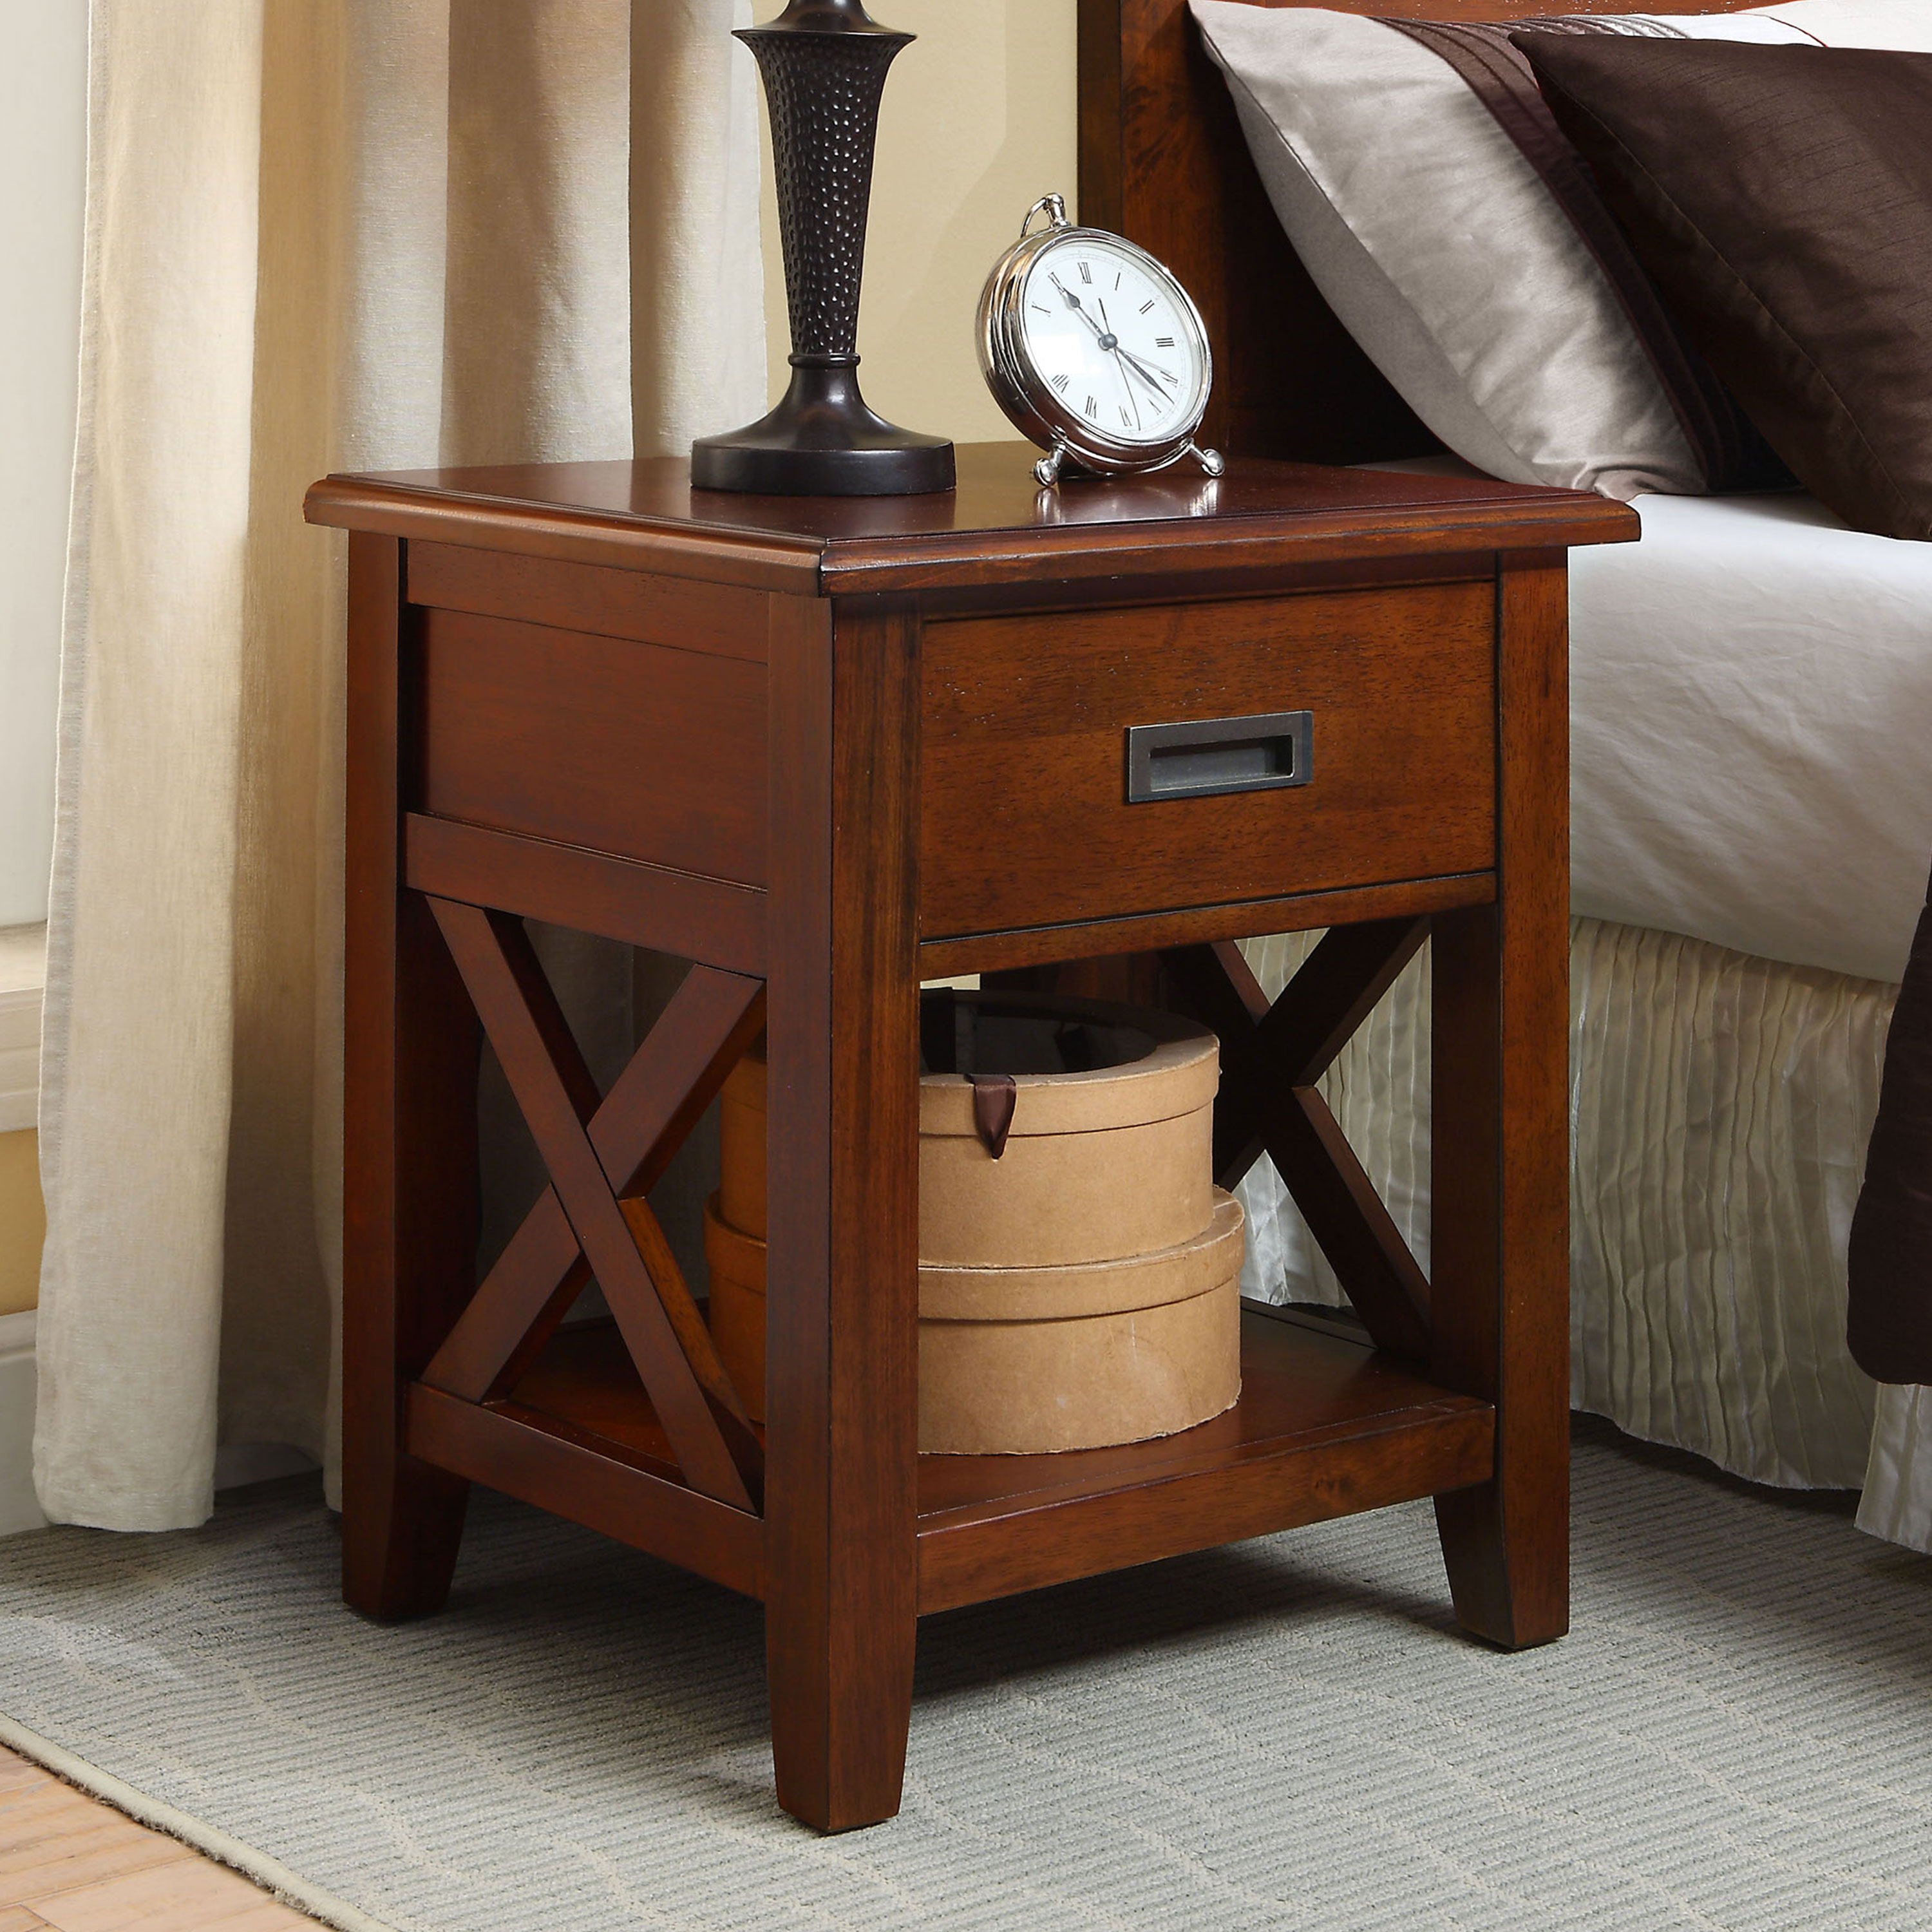 Better Homes & Gardens Maddox Crossing Nightstand, Warm Brown Finish